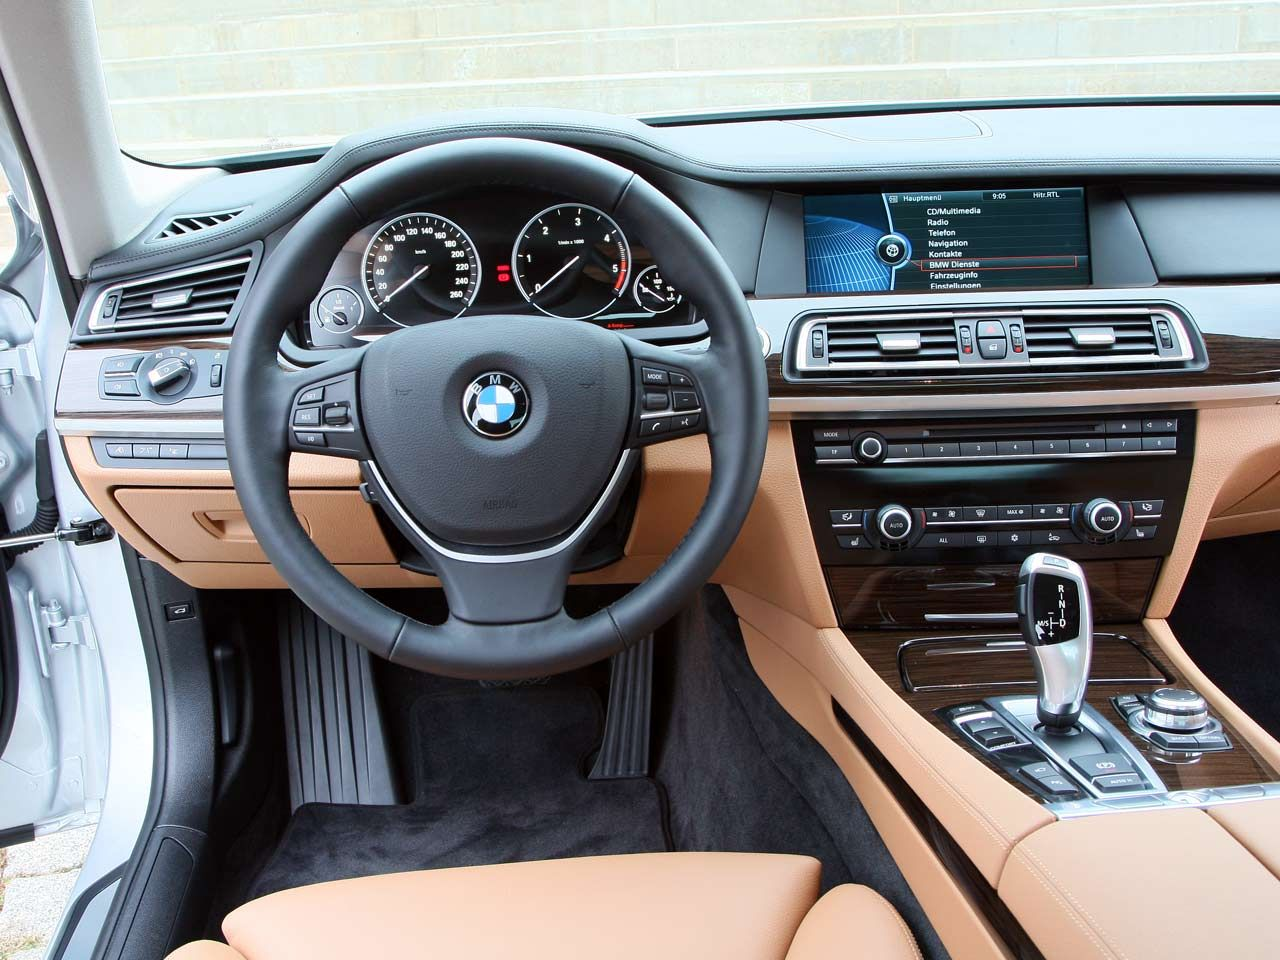 2009 BMW 730d Interior and Exterior Shots